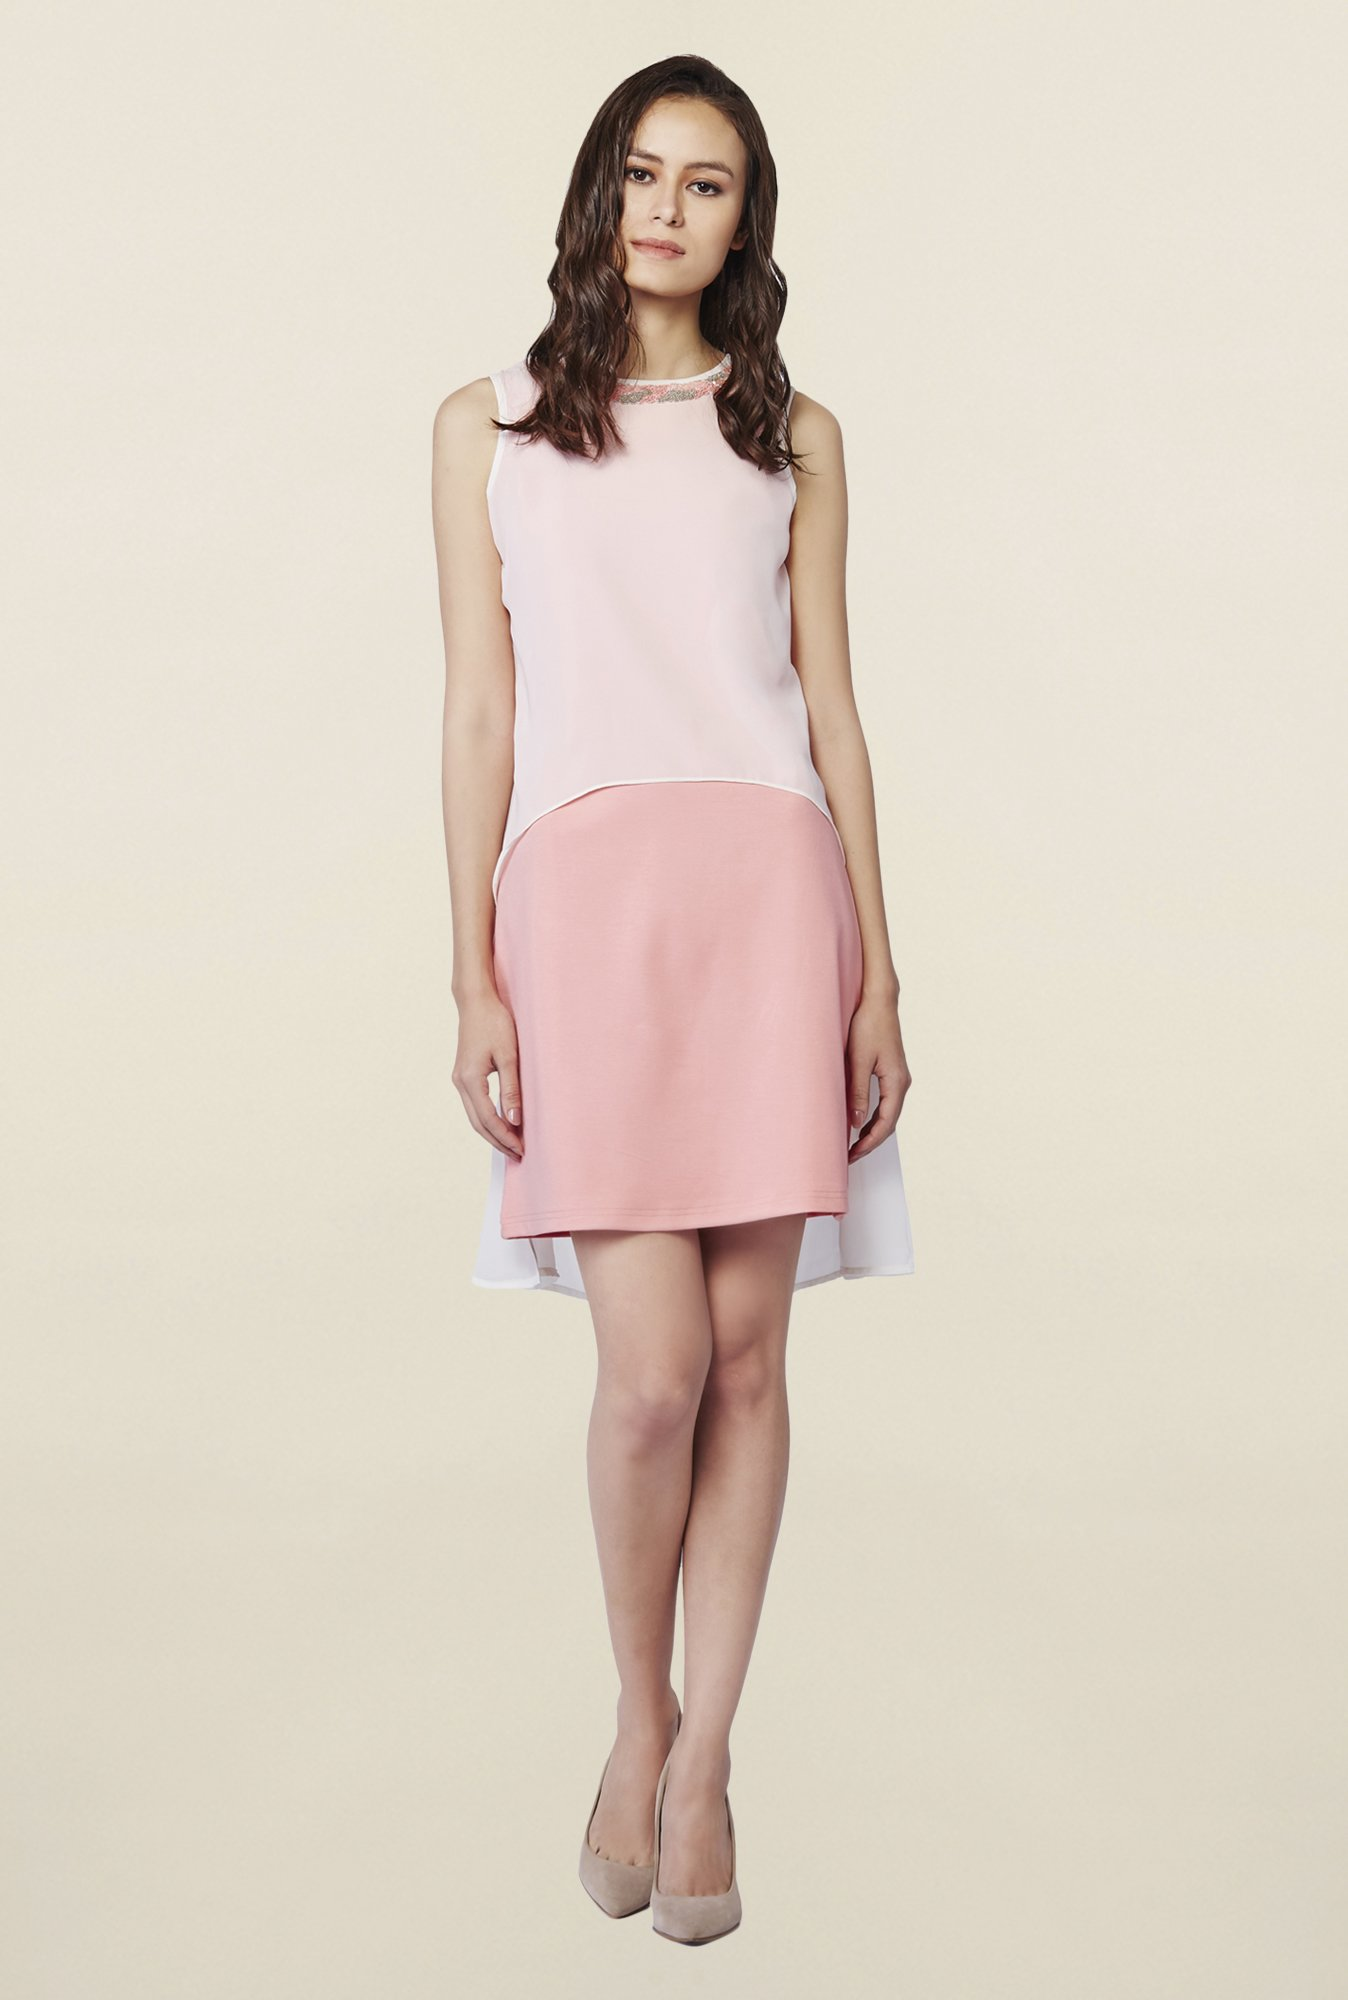 AND Rose Pink Solid Dress